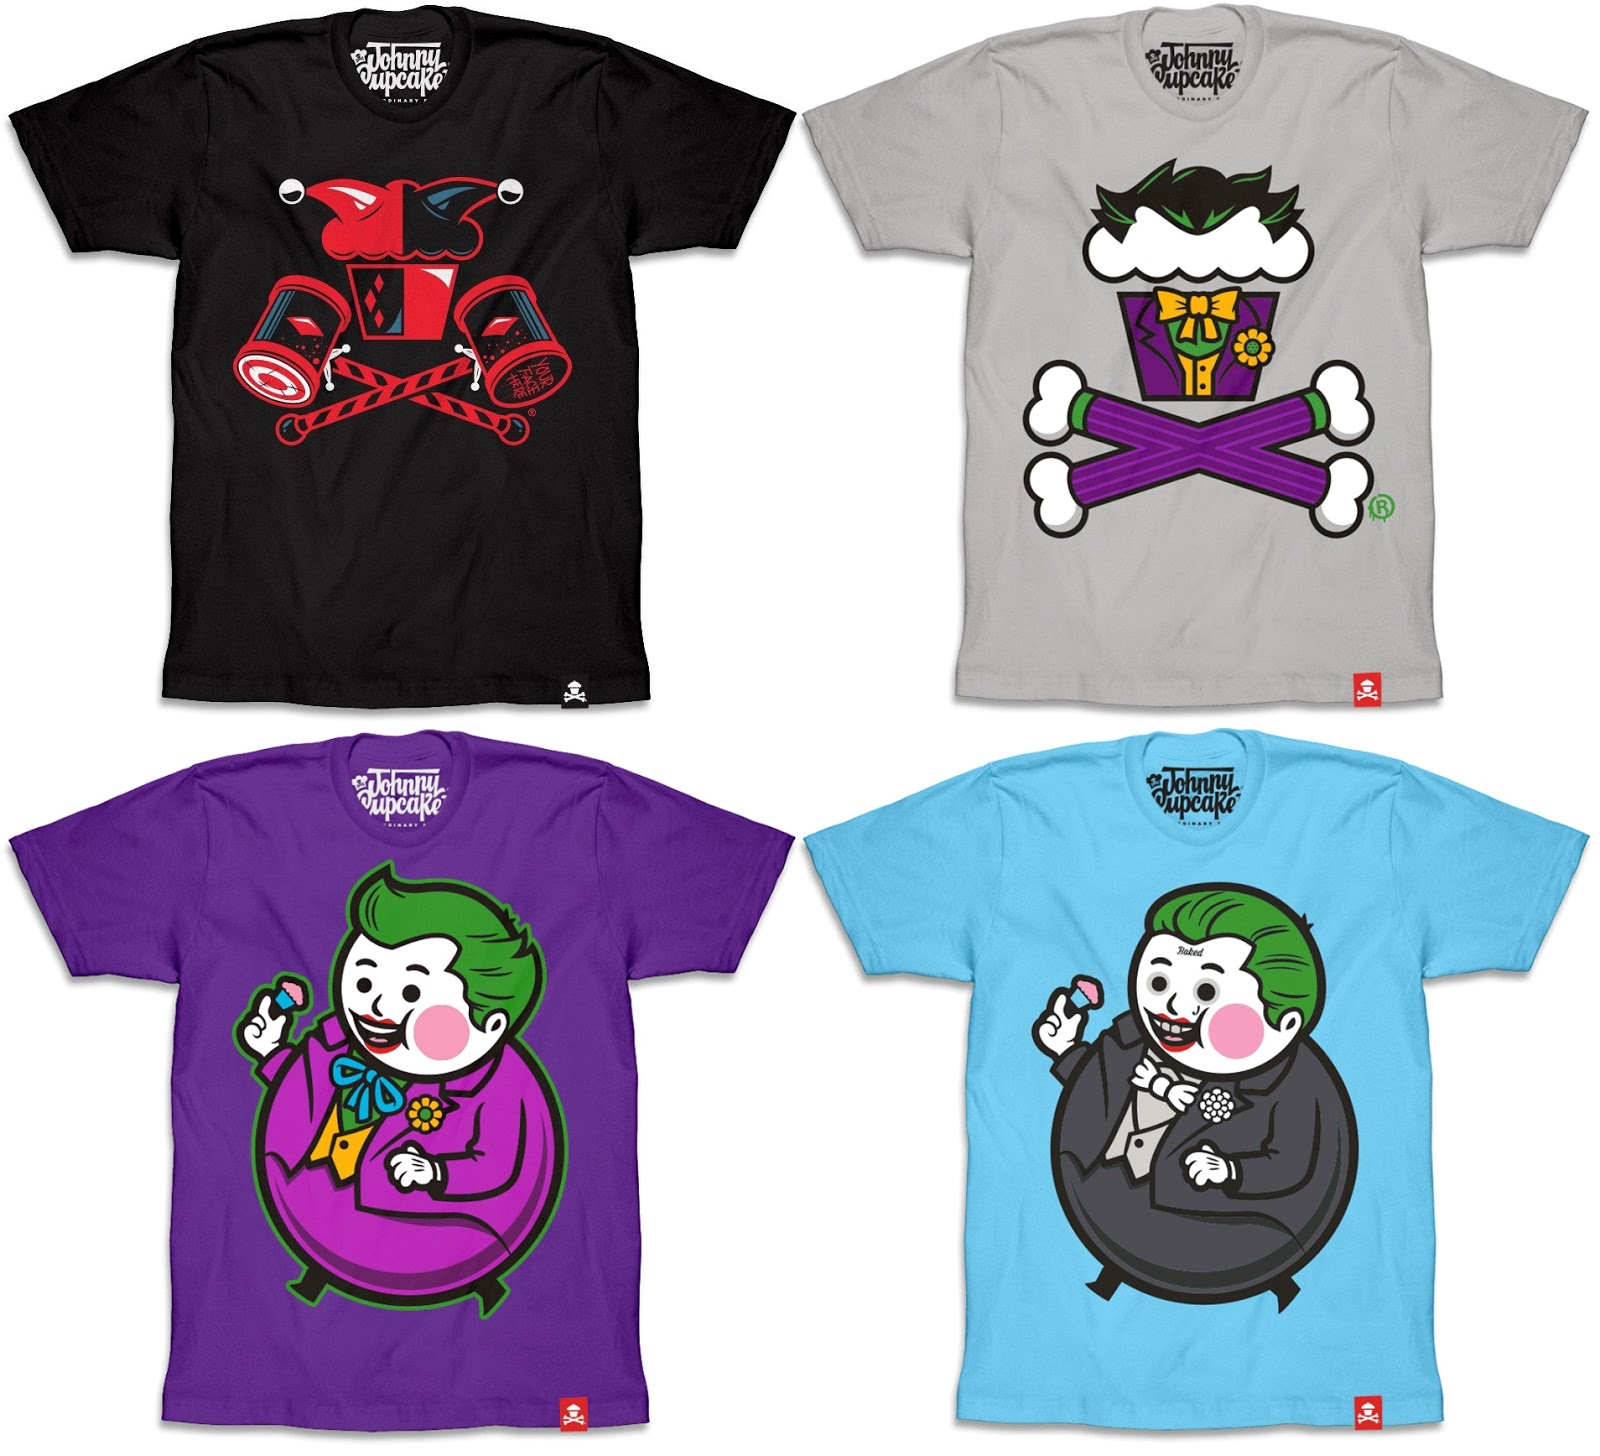 johnny cupcakes Johnny cupcakes | official 🏅top innovator in retail -boston globe 🌎's 1st t-shirt bakery 🎤 keynote speaker 🙈 entrepreneur w/ 🍰-themed 👕's in refrigerators in 🍰-scented shops johnnycupcakescom.